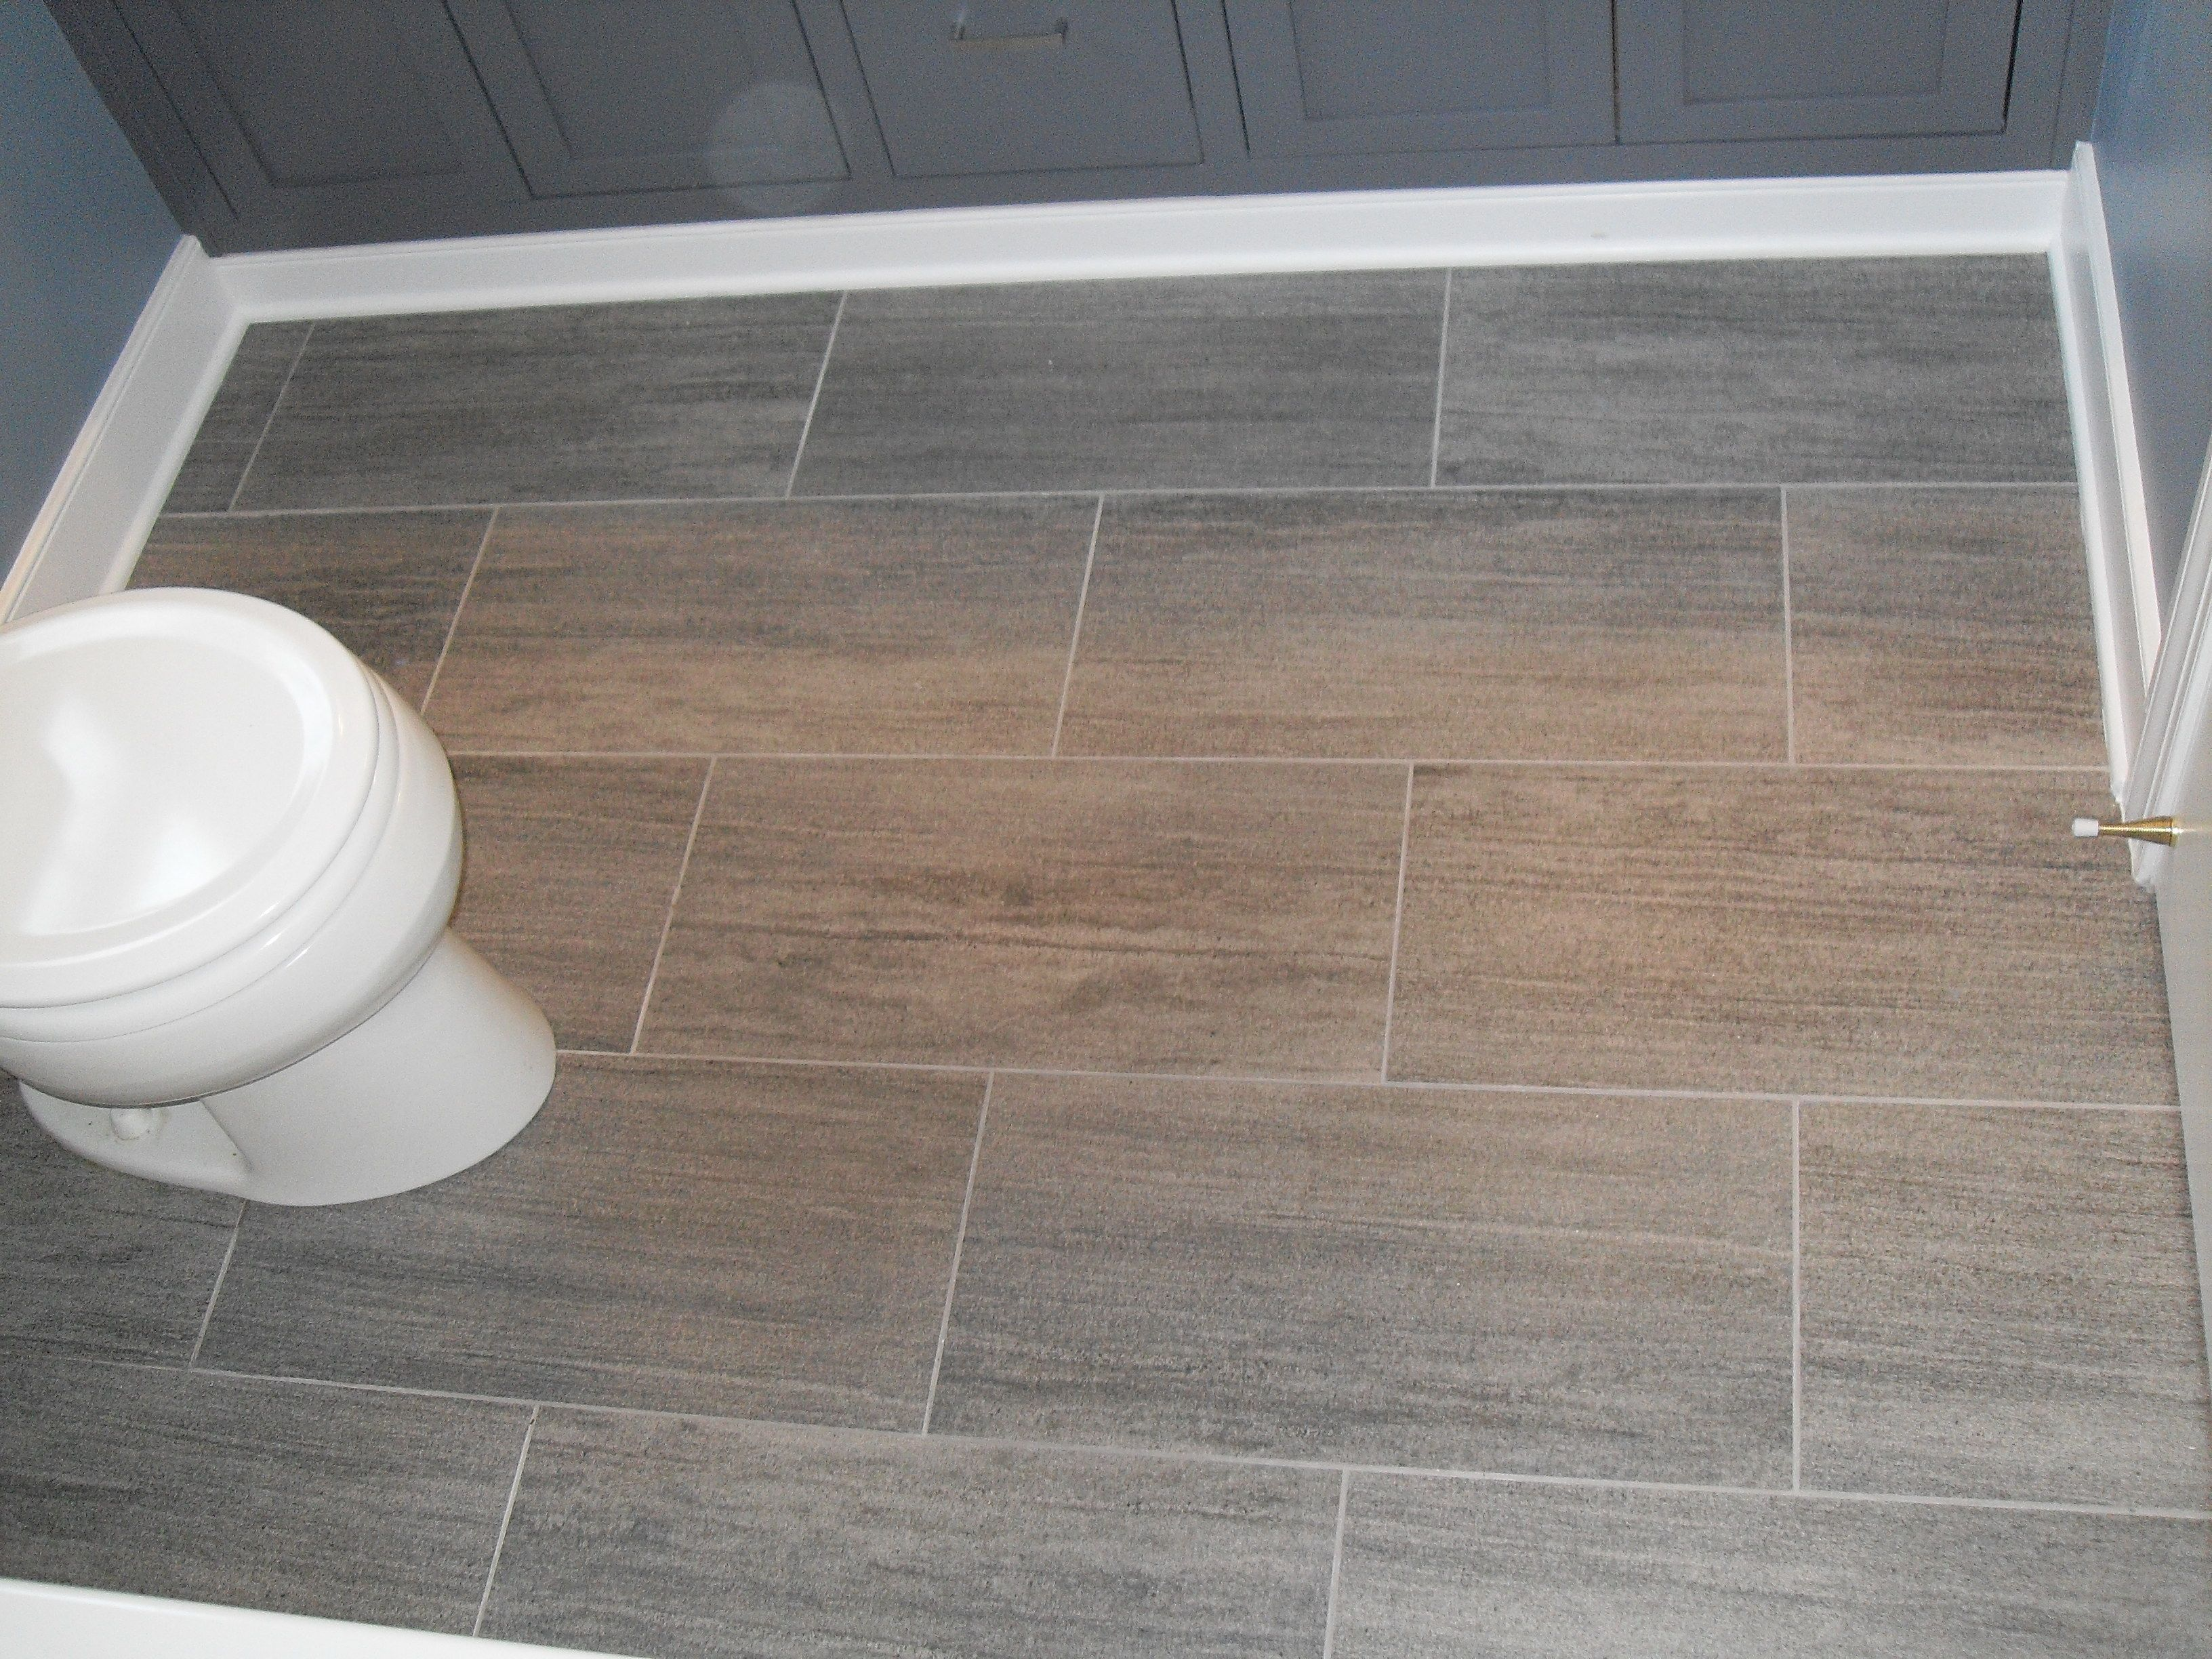 The Bathroom Floor Tile Ideas With Grey Porcelain And Classic Is Designed Section Of To